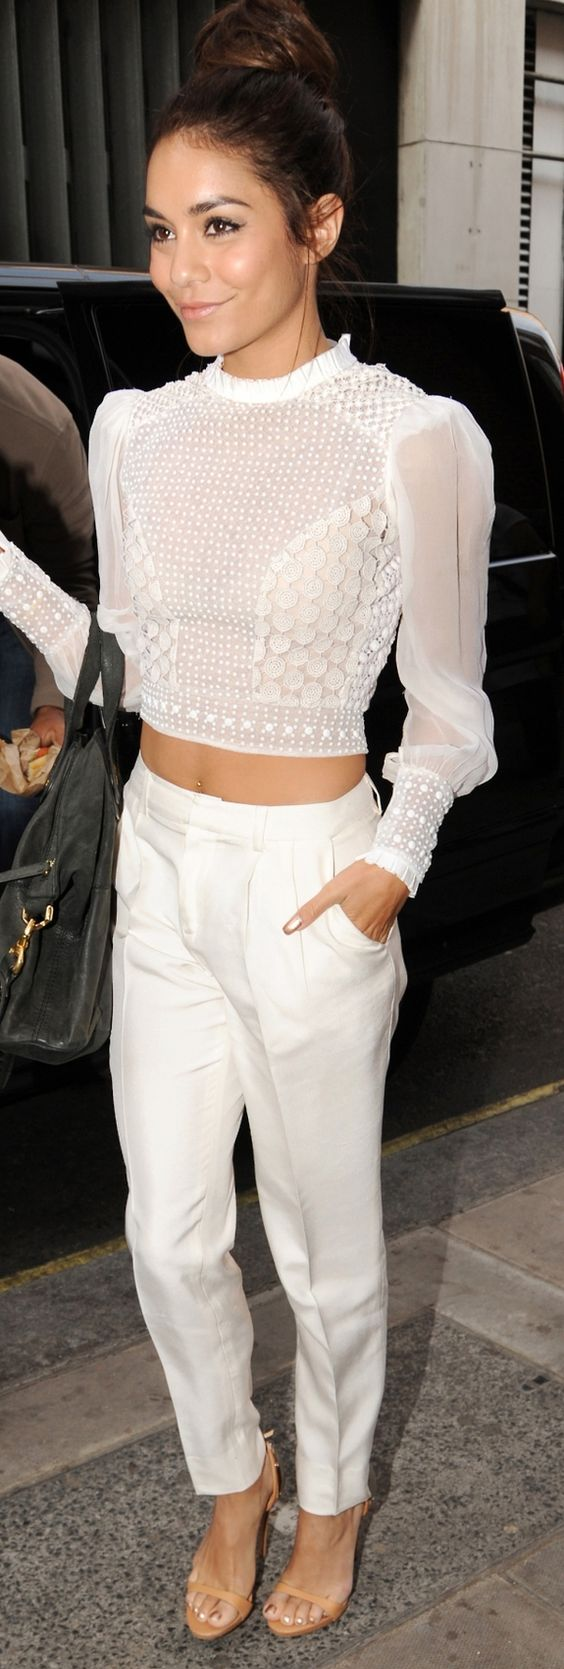 16 Chic White Outfits To Wear In Summer | Styles Weekly